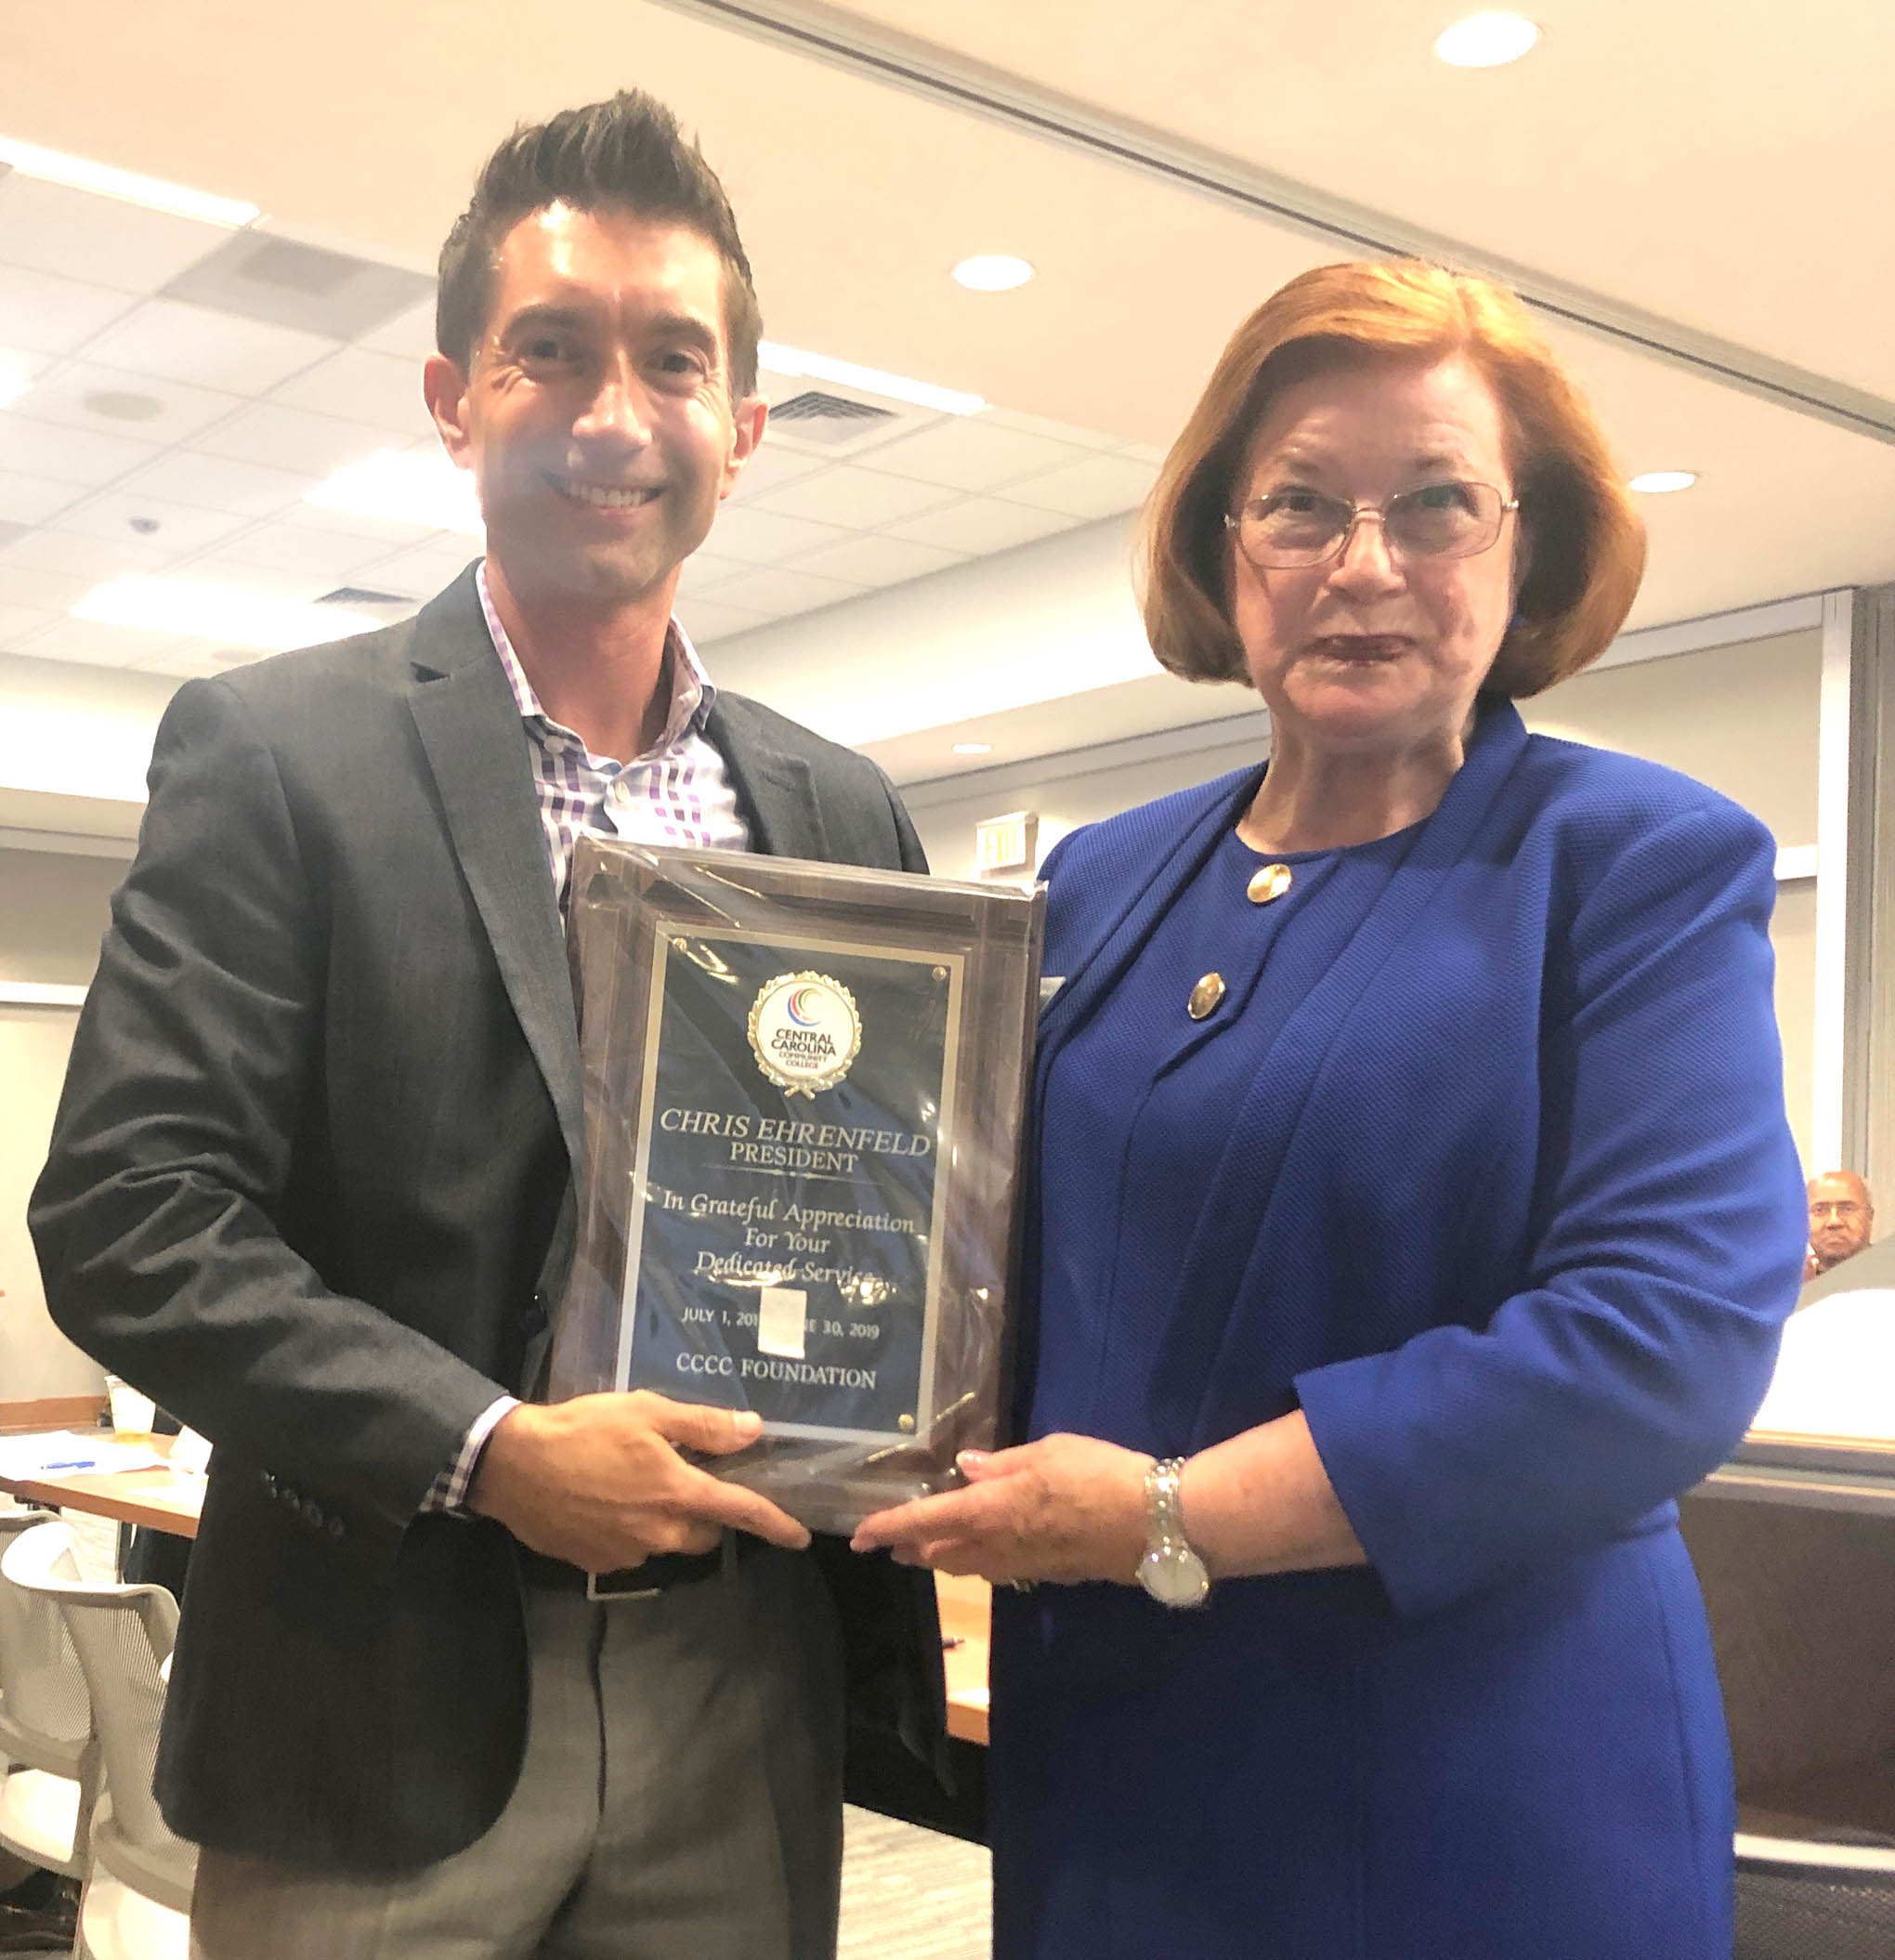 CCCC Foundation recognizes Chris Ehrenfeld